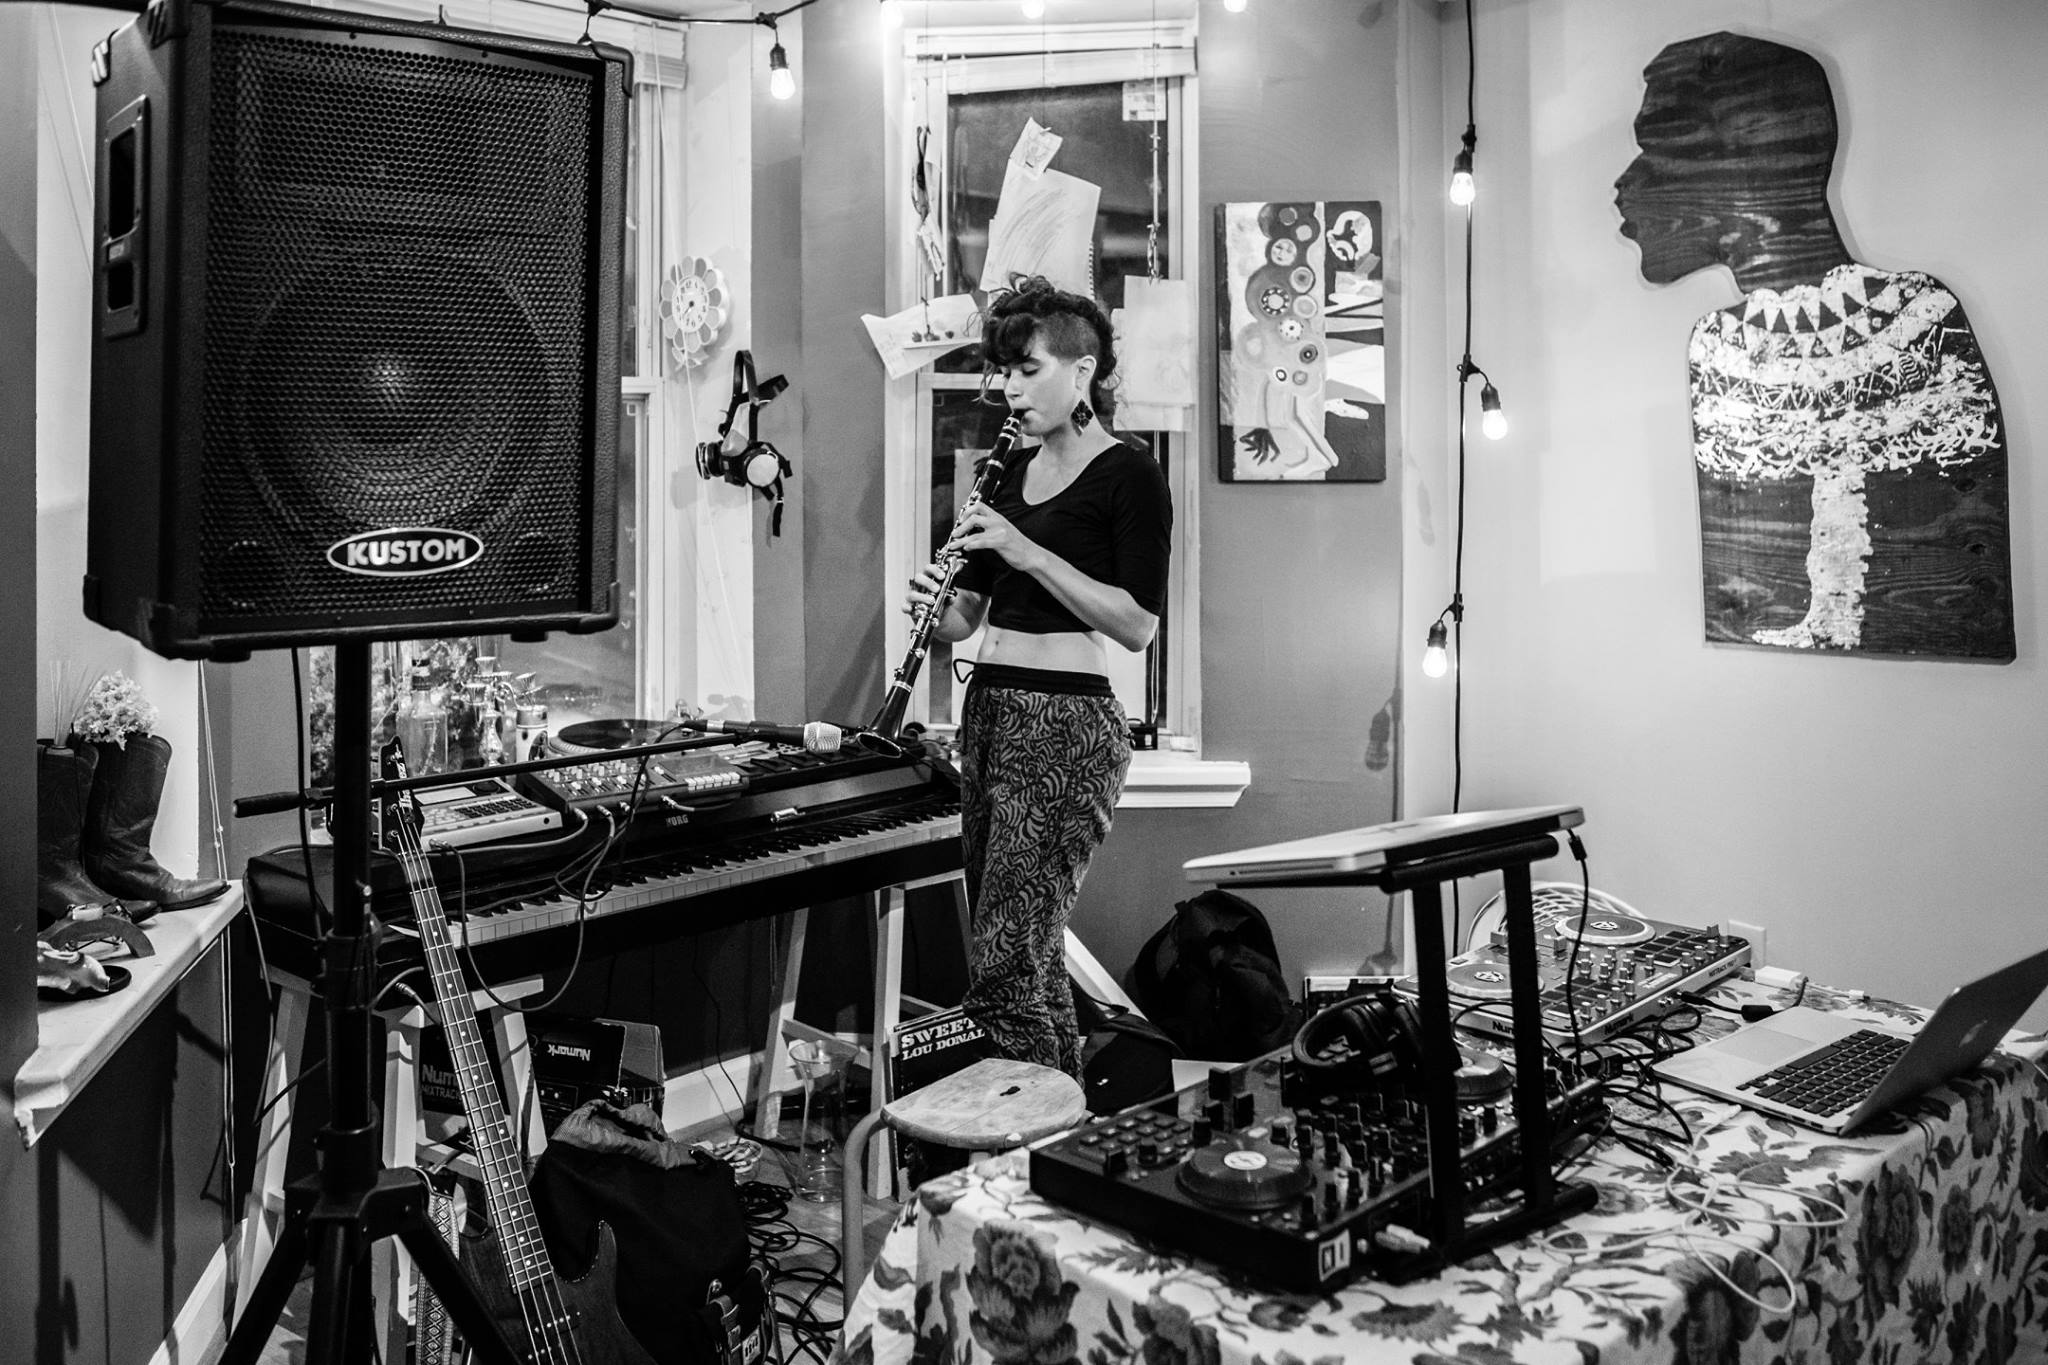 k-Aorta, photo by @tonyhitchcock